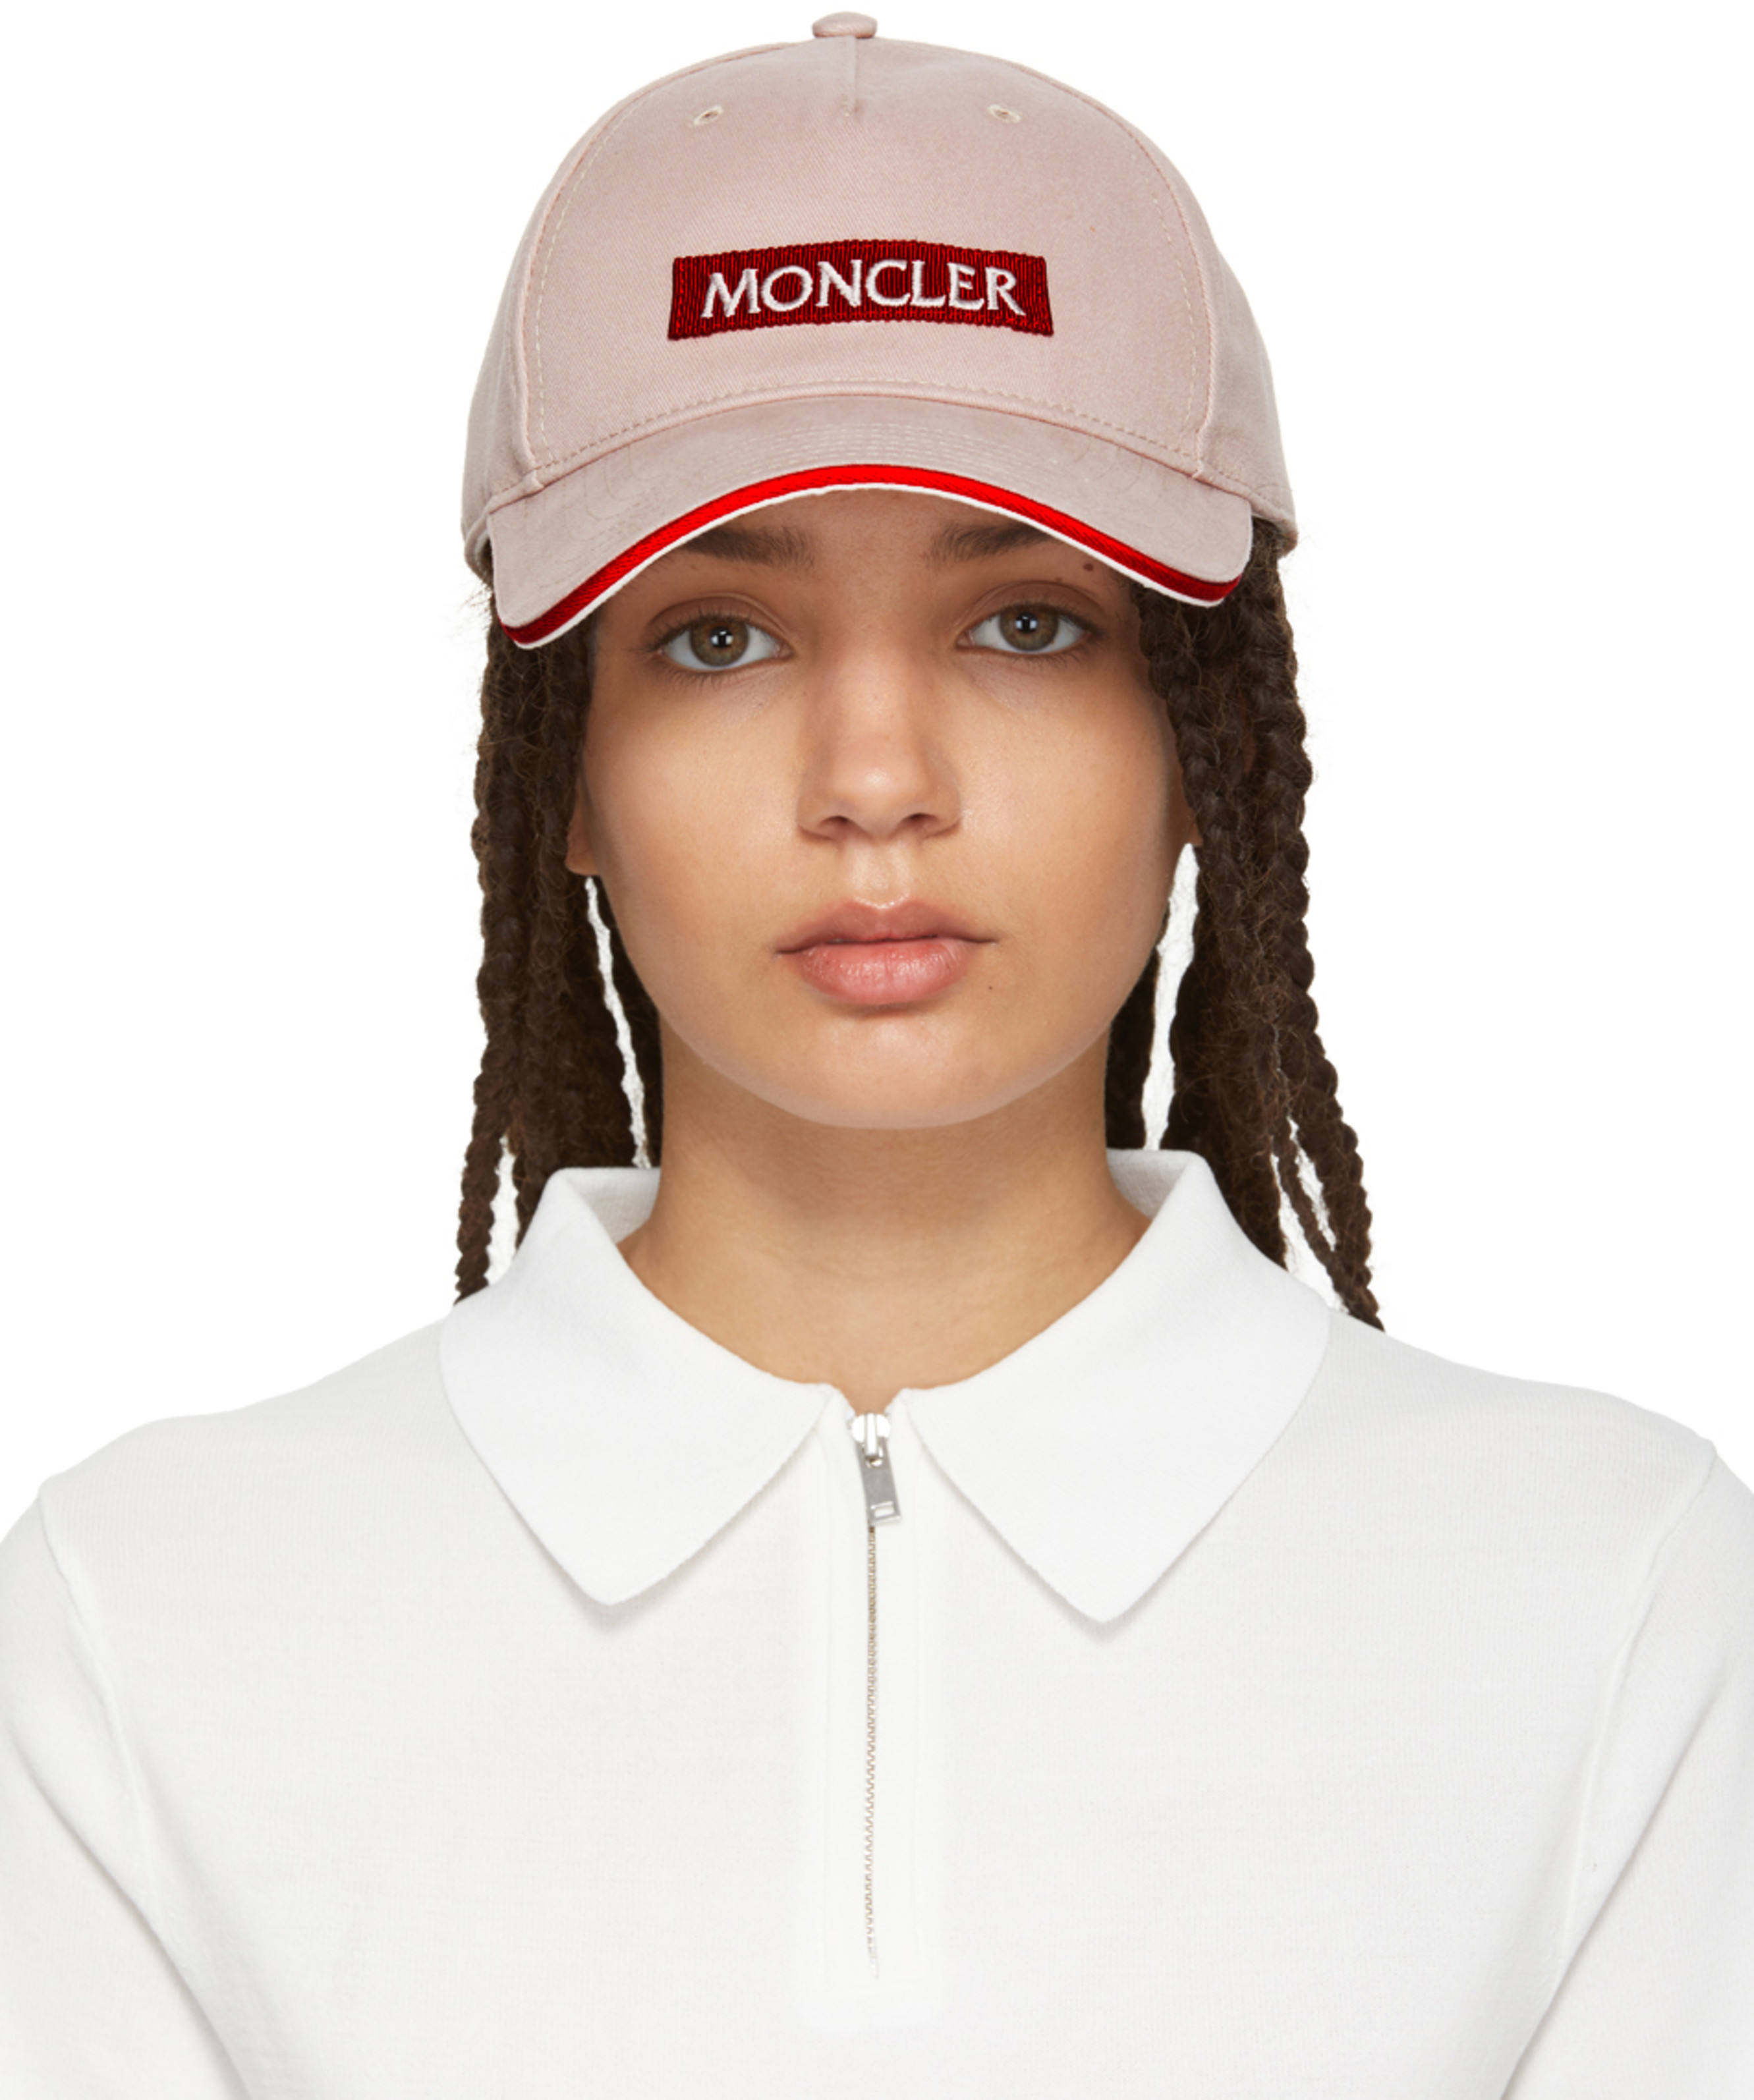 ee245c906ac Moncler hats for Women